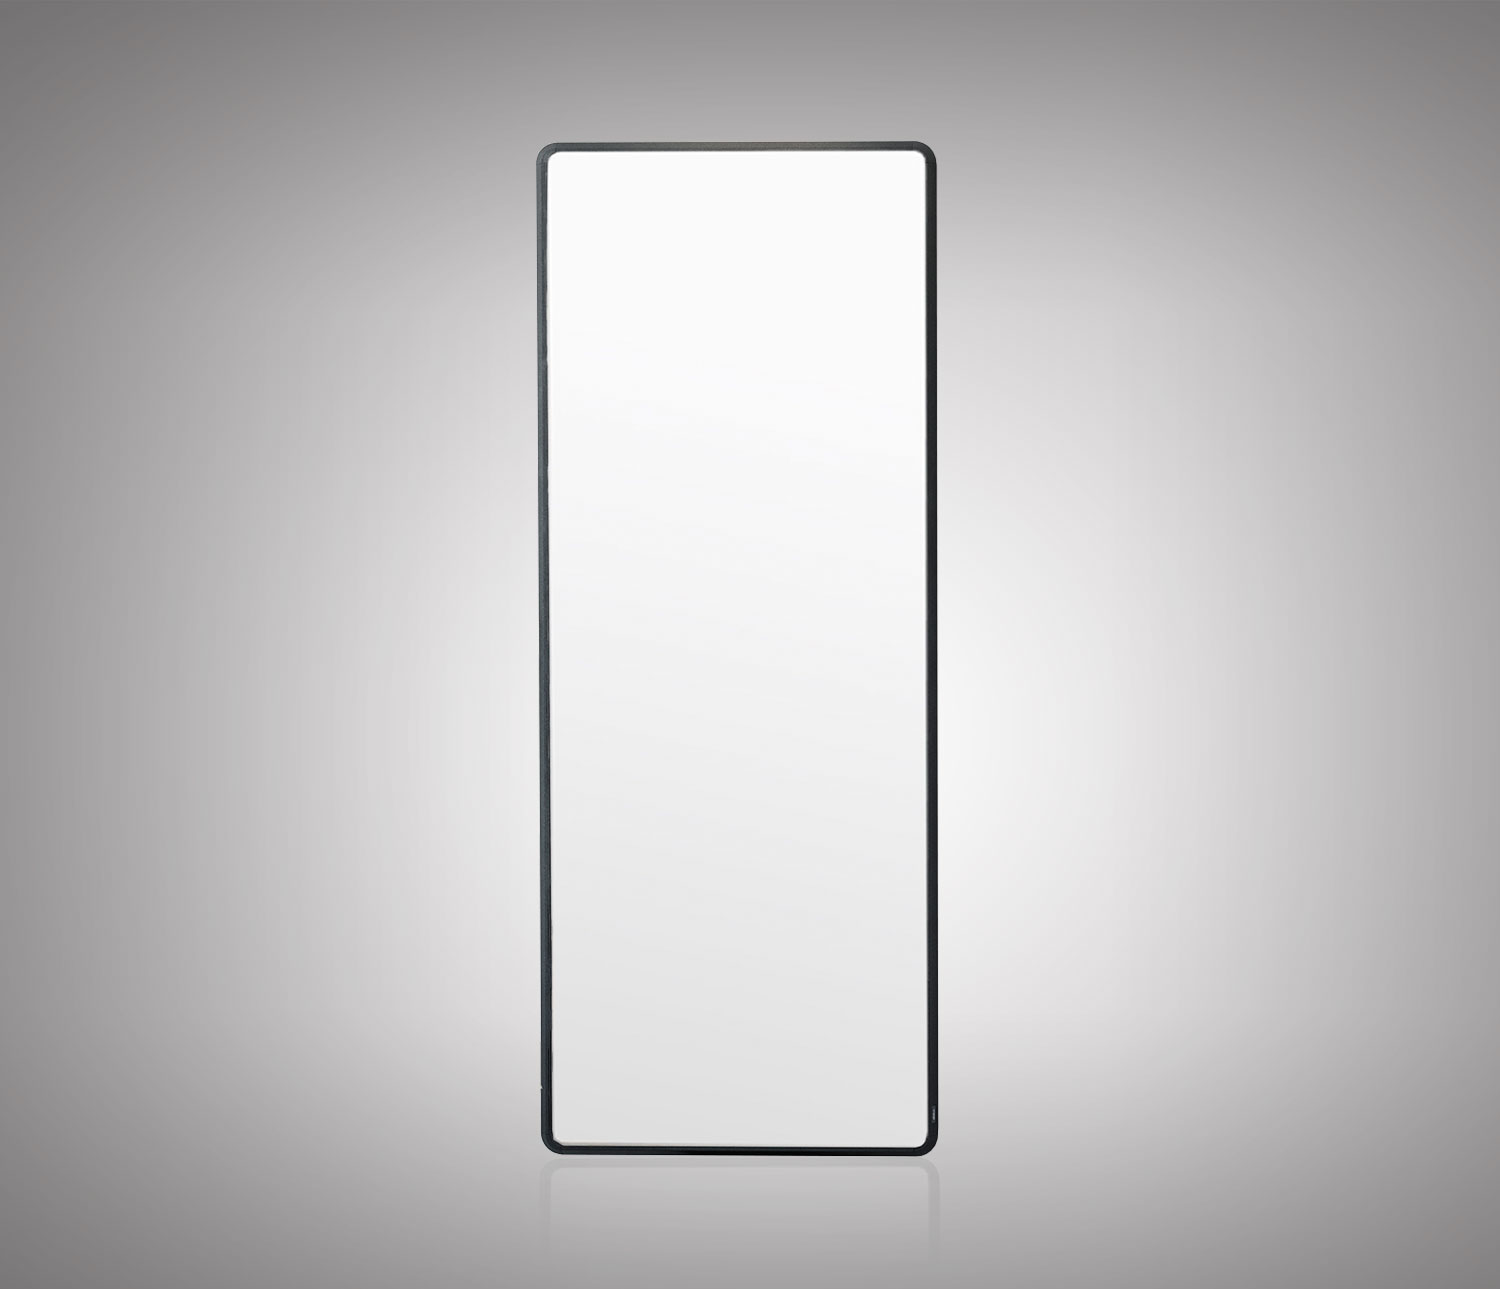 vipp912-mirror-productpicture_1.jpg